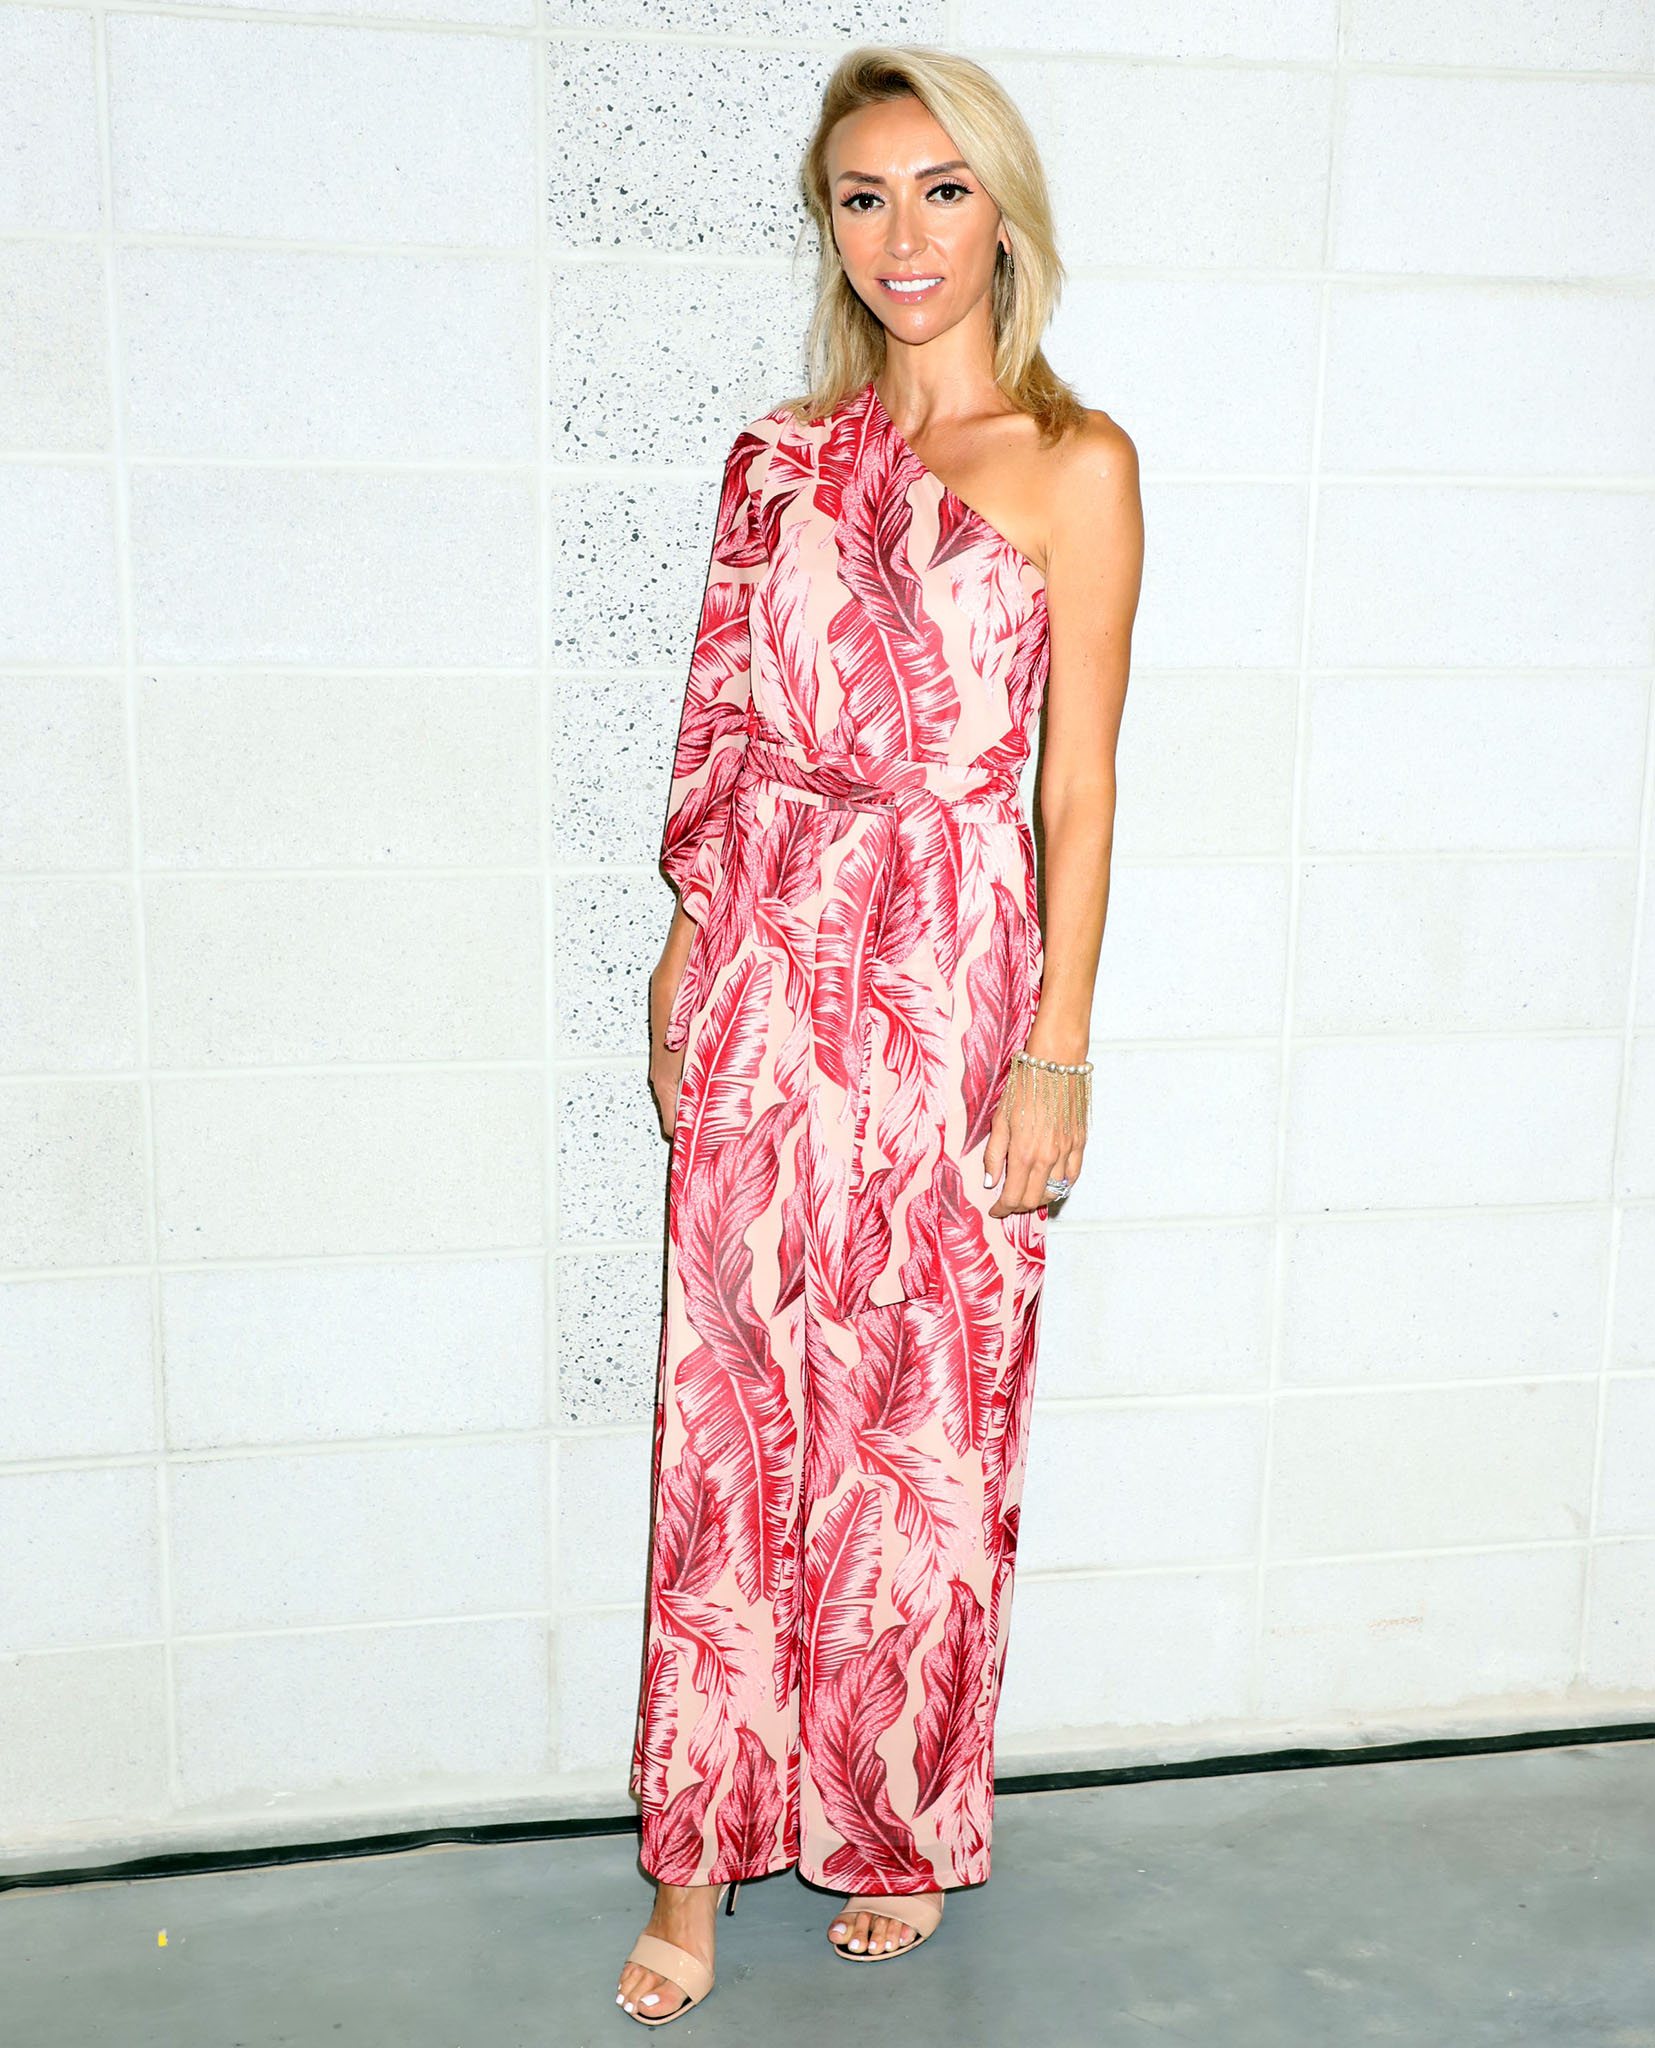 Giuliana Rancic at the Magic Fashion Trade Show in Las Vegas on August 10, 2021